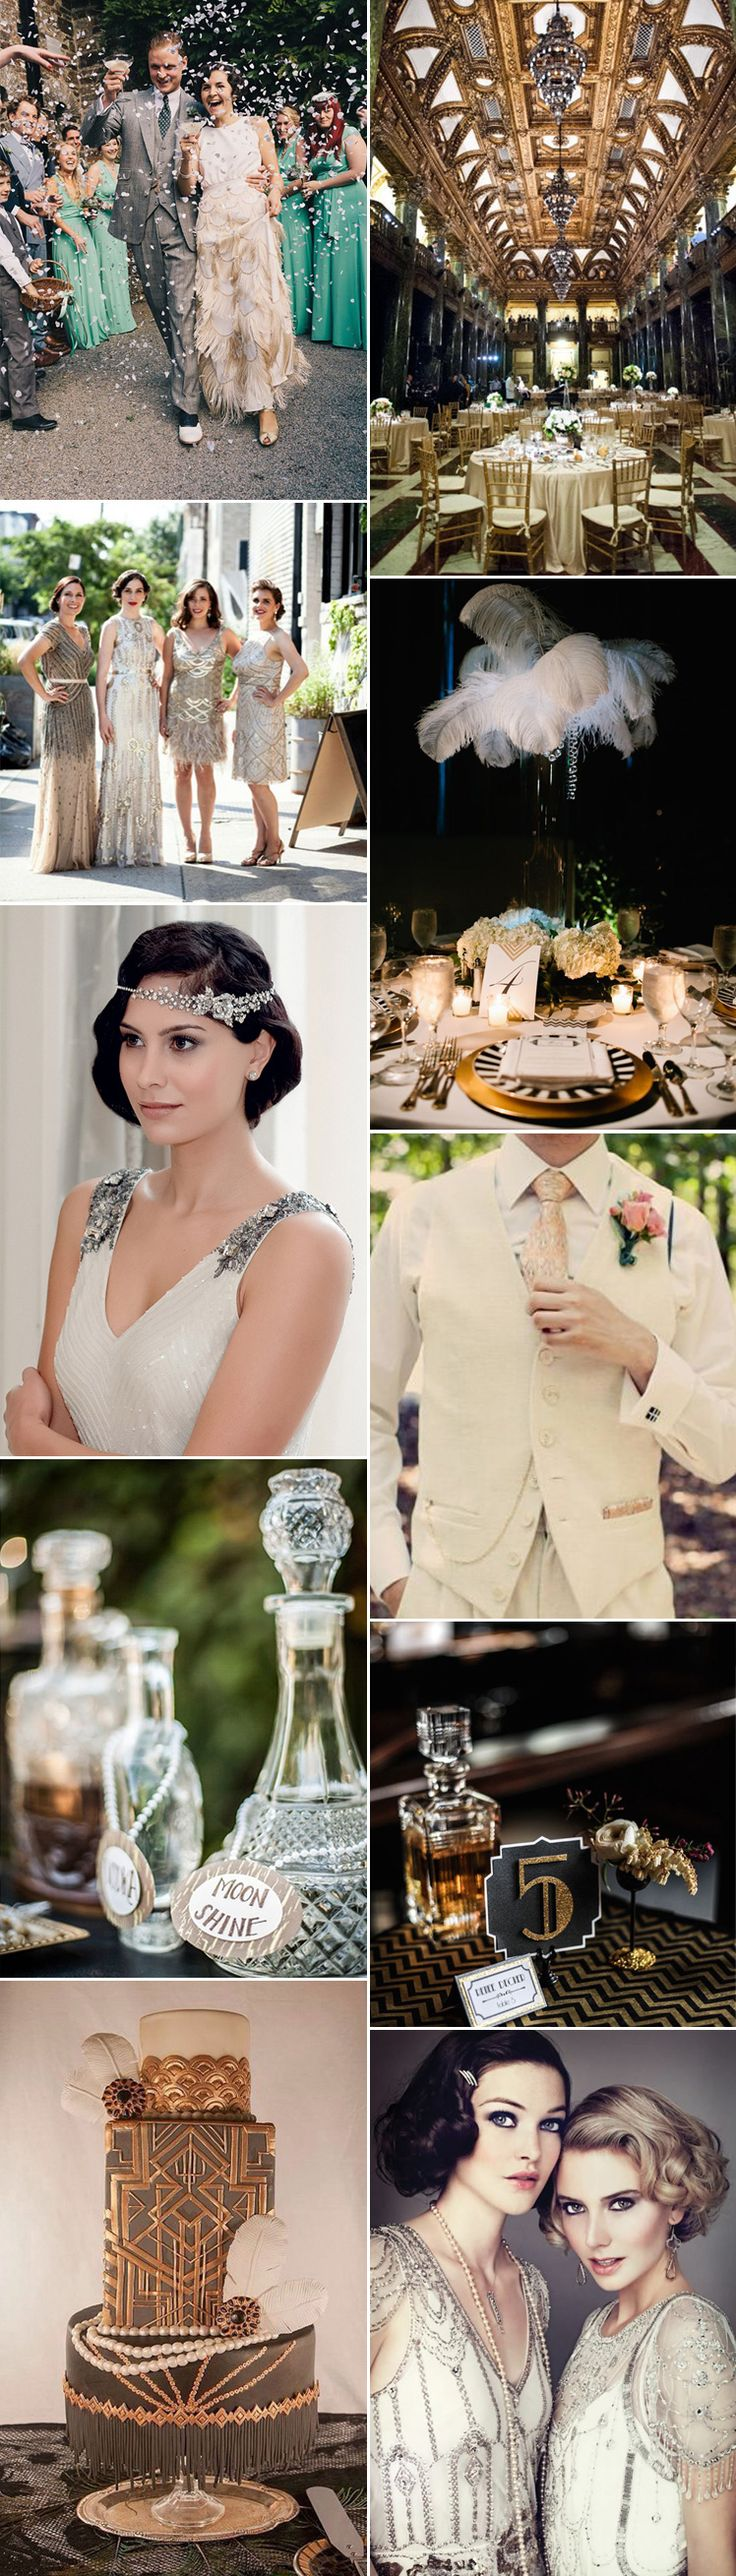 1920s wedding day glamour on GS Inspiration - Glitzy Secrets -repinned from Los Angeles County, CA marriage officiant https://OfficiantGuy.com